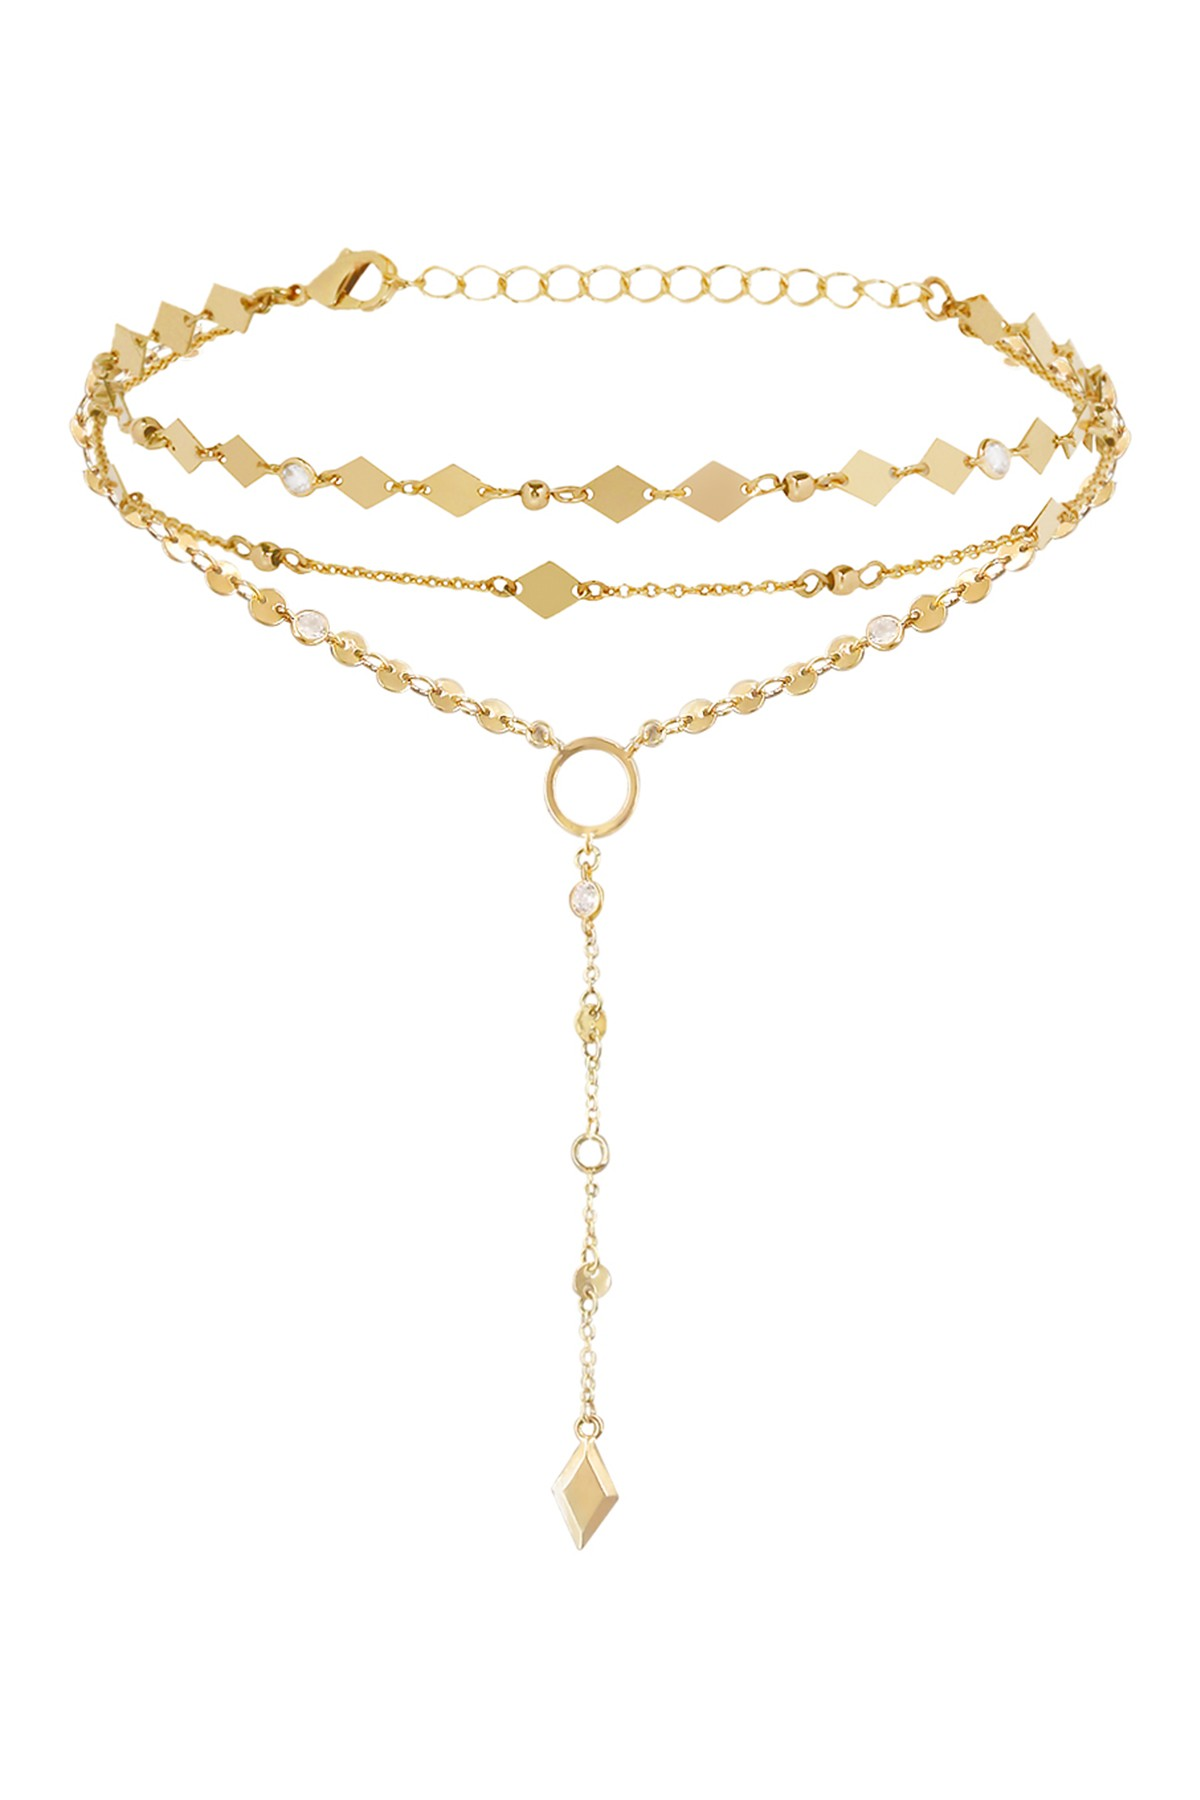 Gold layering necklaces from Nordstrom